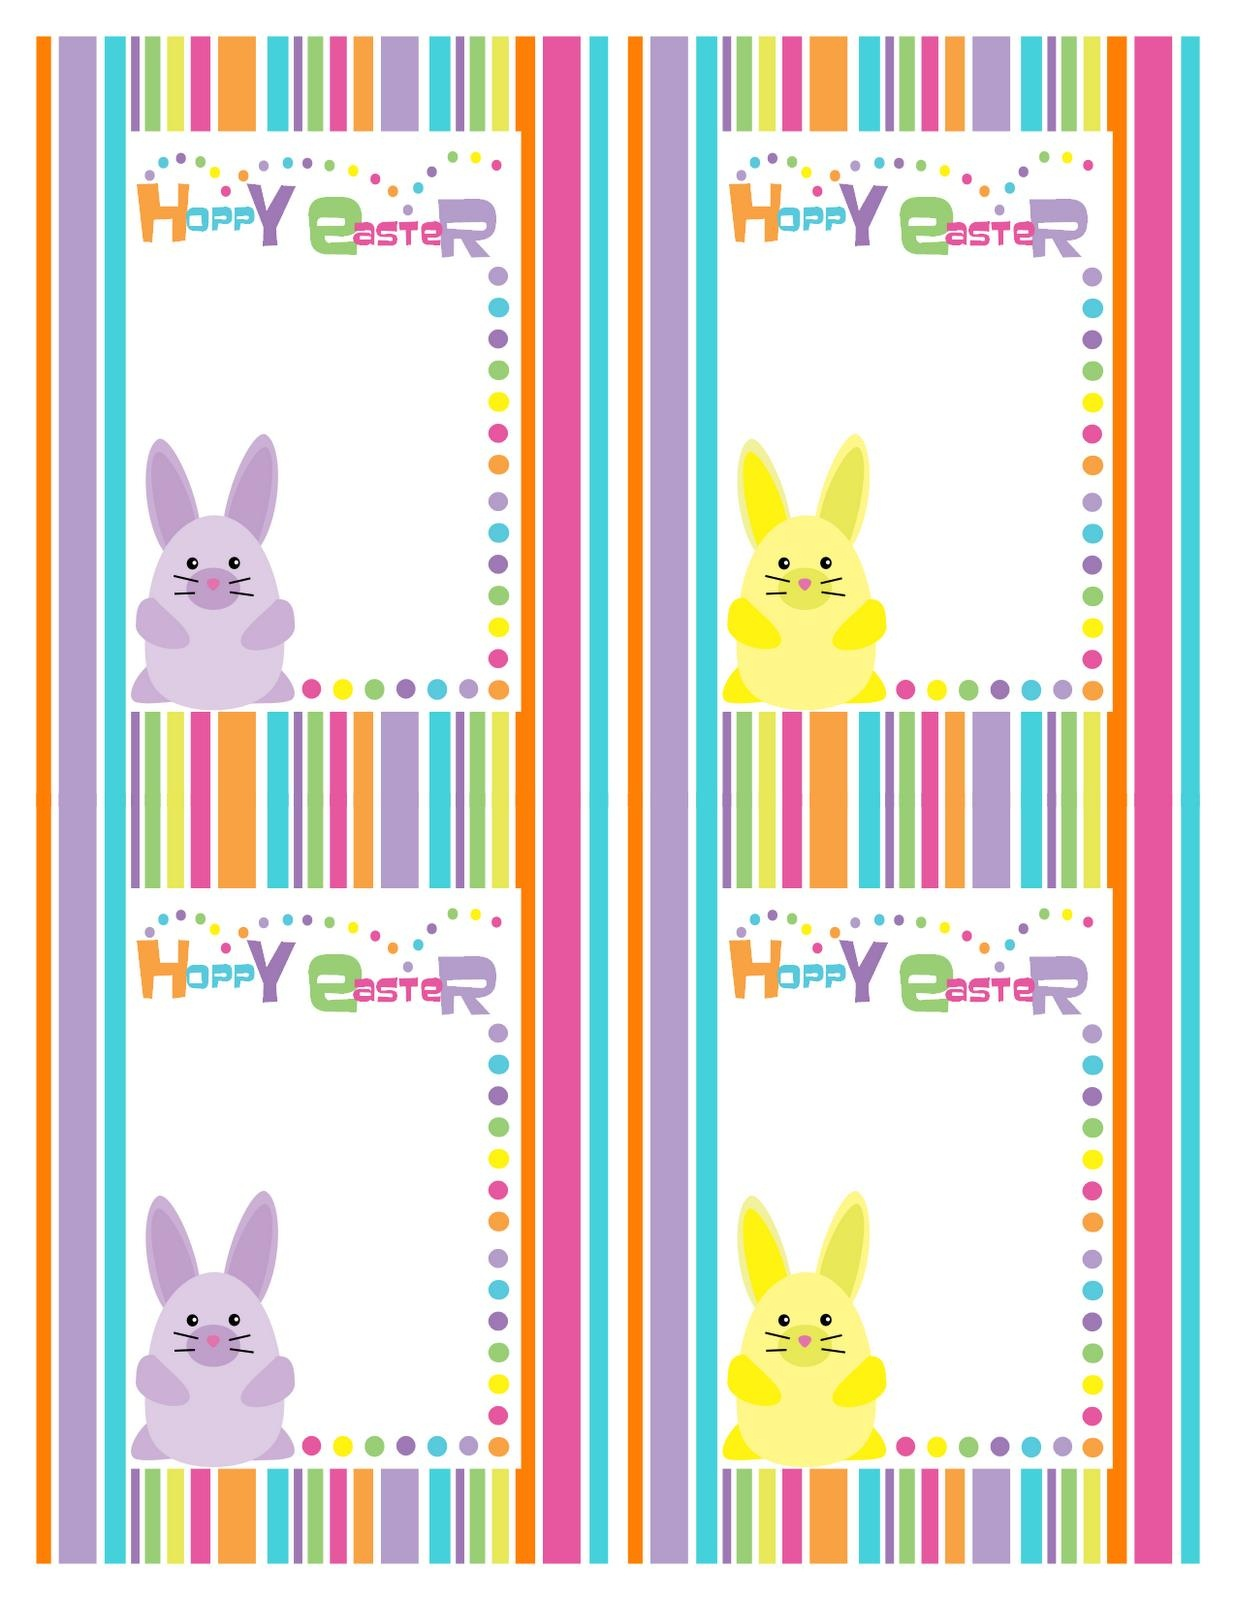 Free Printable Easter Tags – Hd Easter Images - Free Easter Name Tags Printable